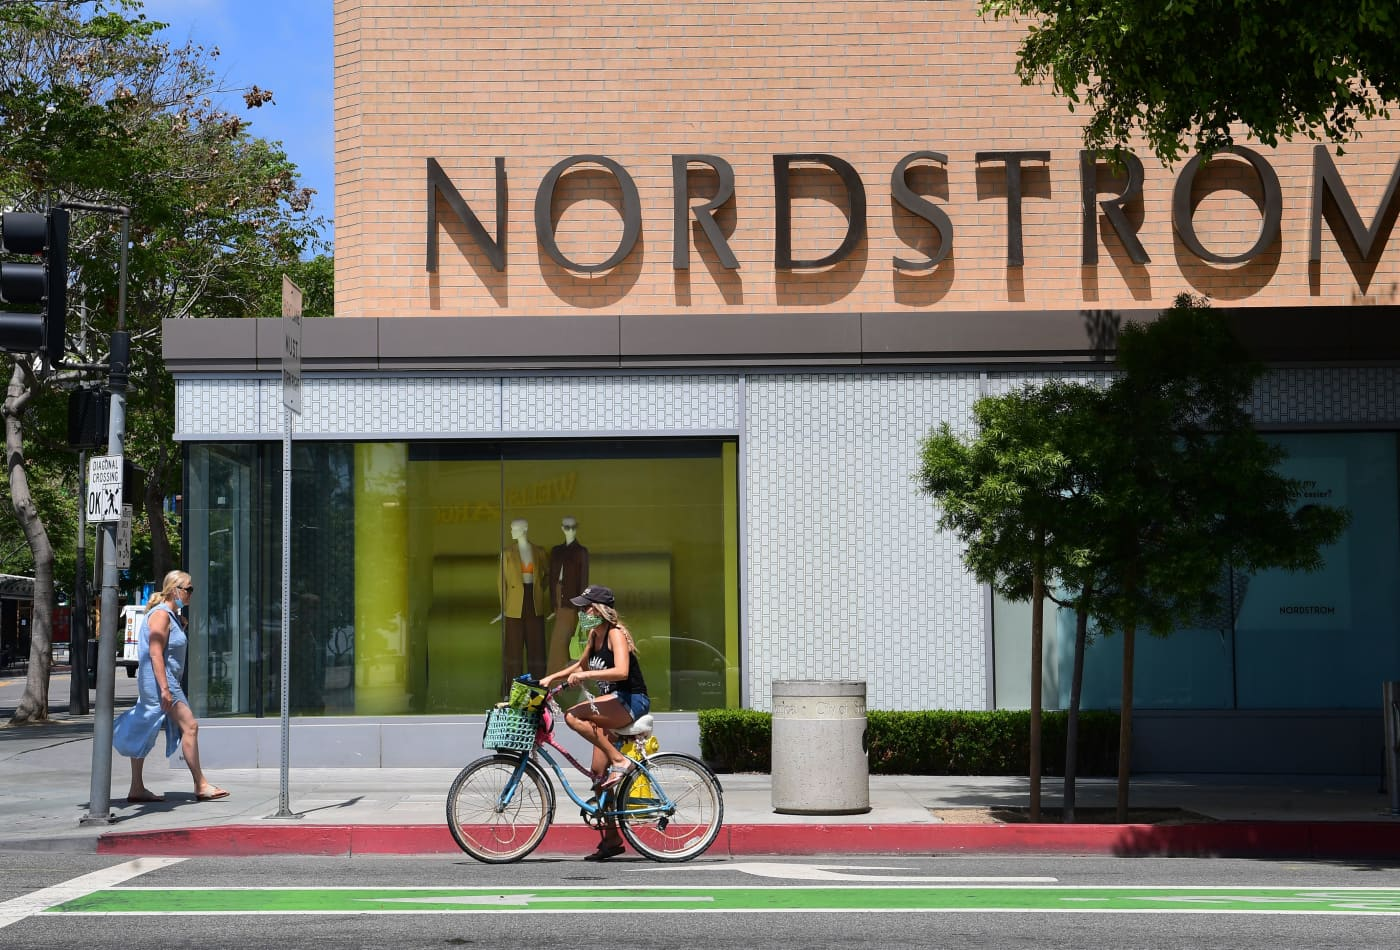 Nordstrom shares tumble as 2021 sales outlook disappoints, retailer sees bigger shift to Rack